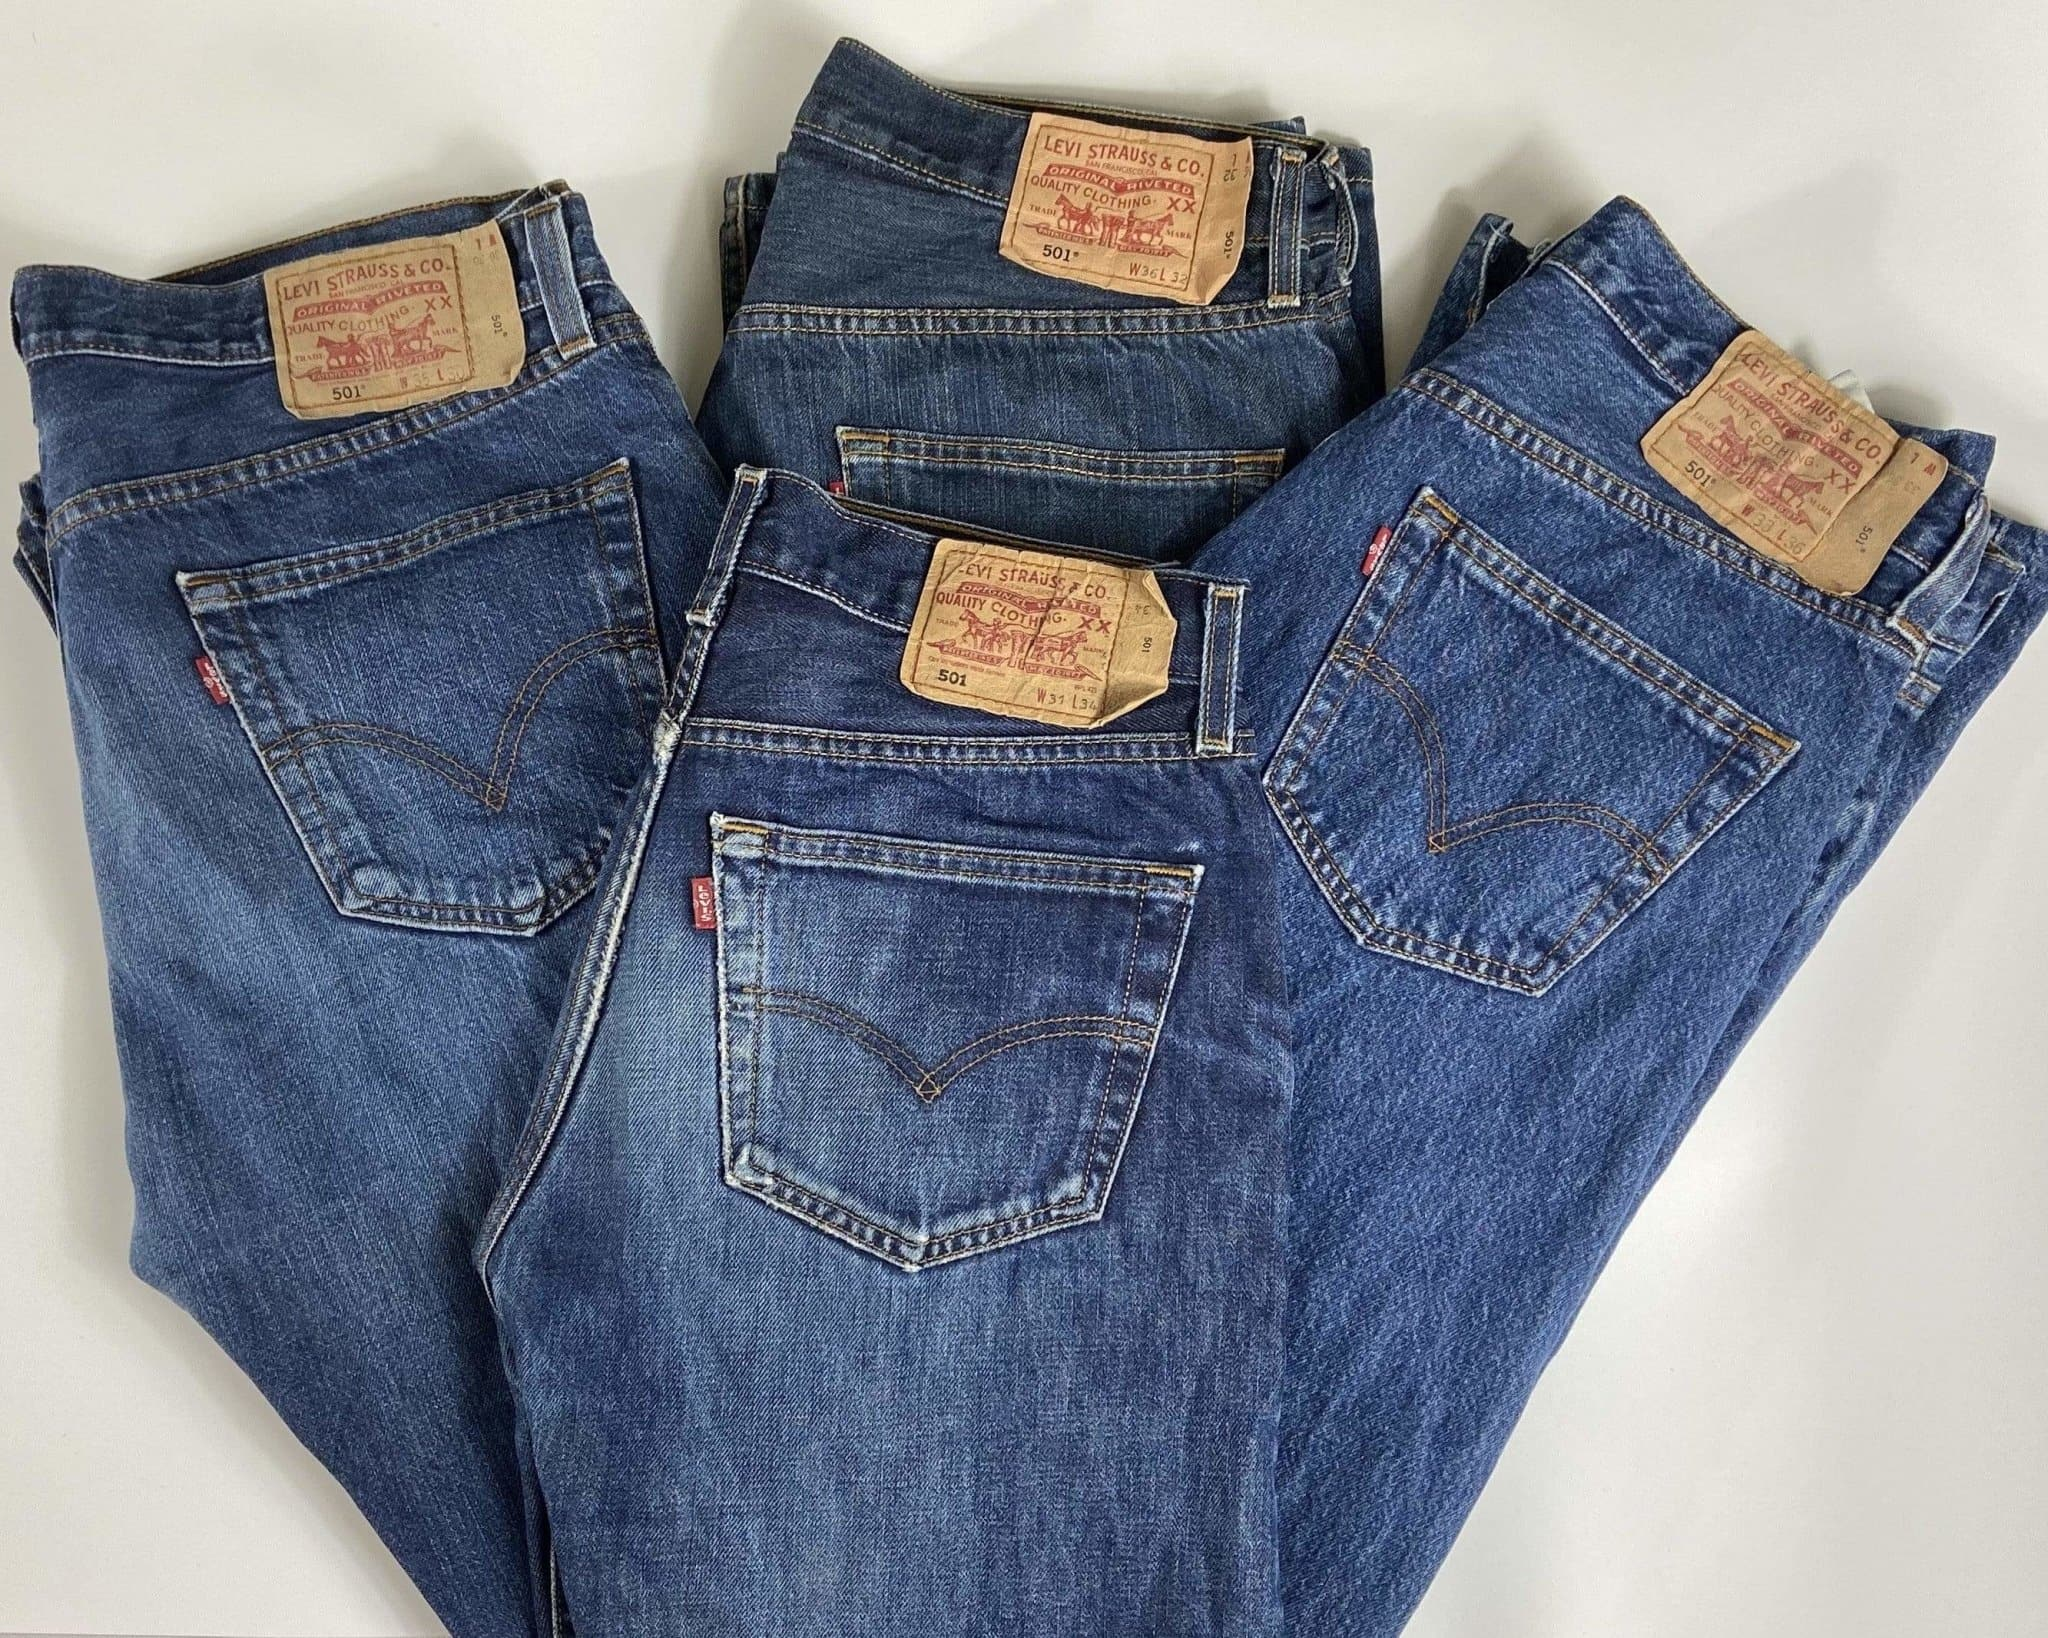 Vintage Levi's Classic 501 Jeans W33 L32 (C10) - Discounted Deals UK